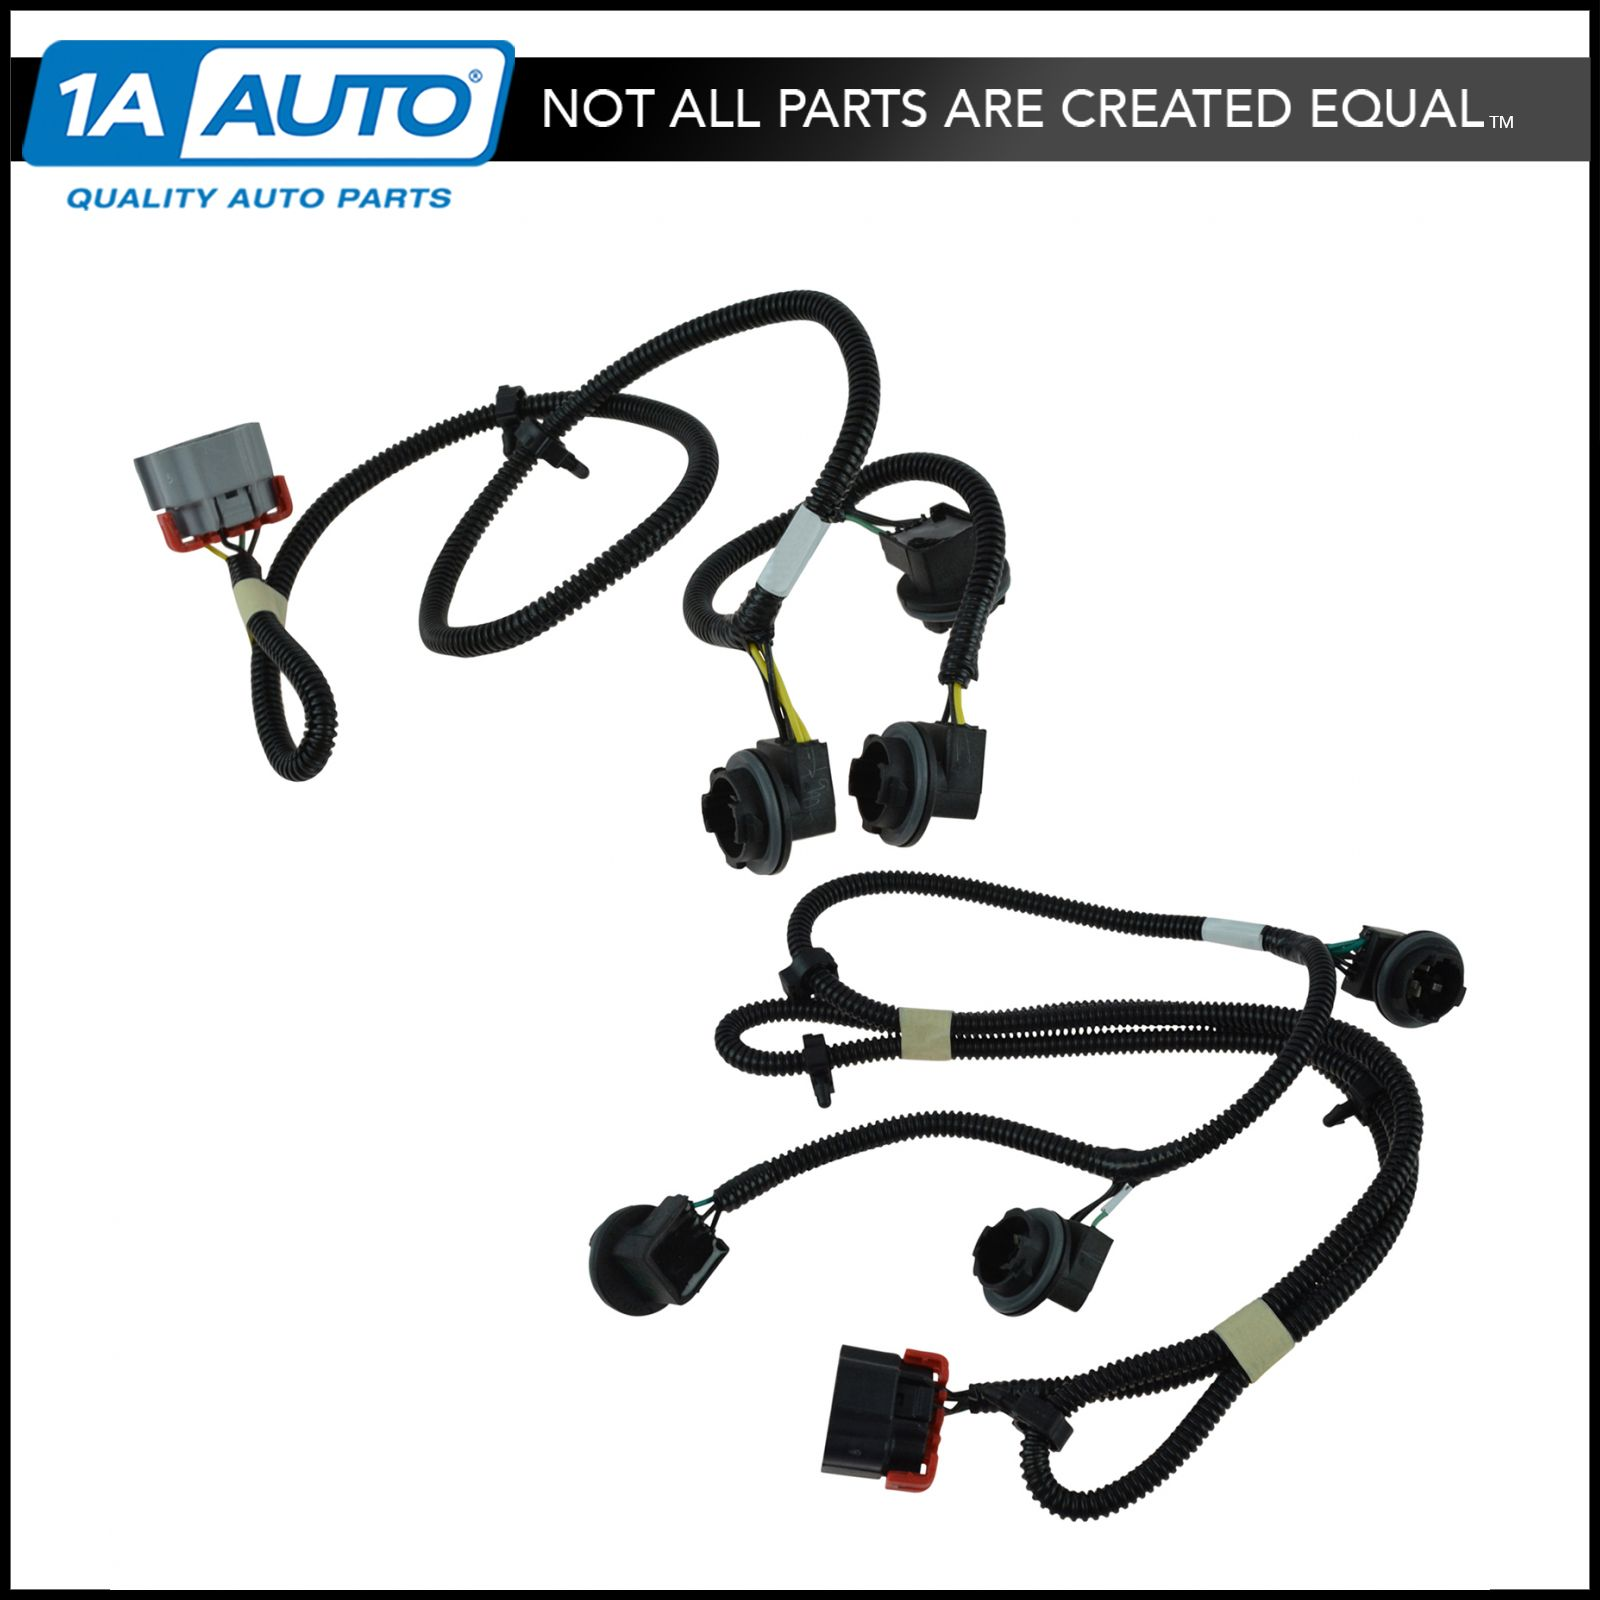 oem tail light lamp wiring harness pair lh rh sides for. Black Bedroom Furniture Sets. Home Design Ideas